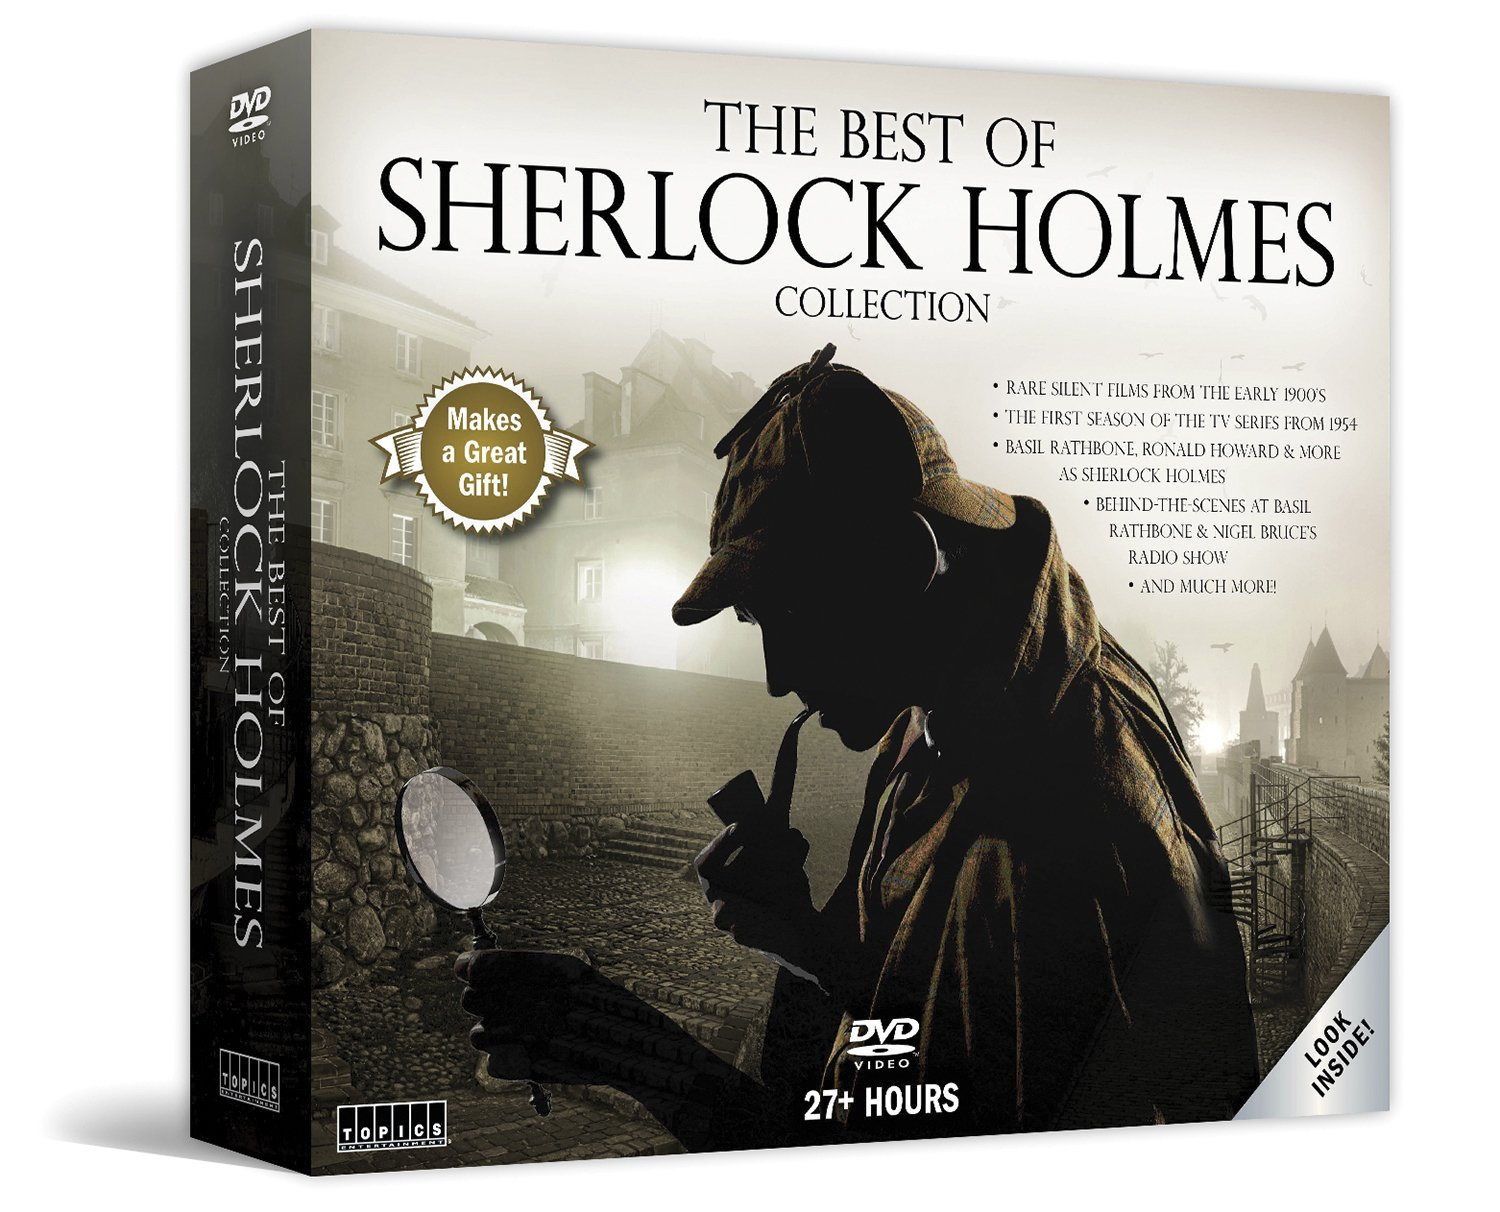 The Best of Sherlock Holmes: 12-Disc Collector's Set